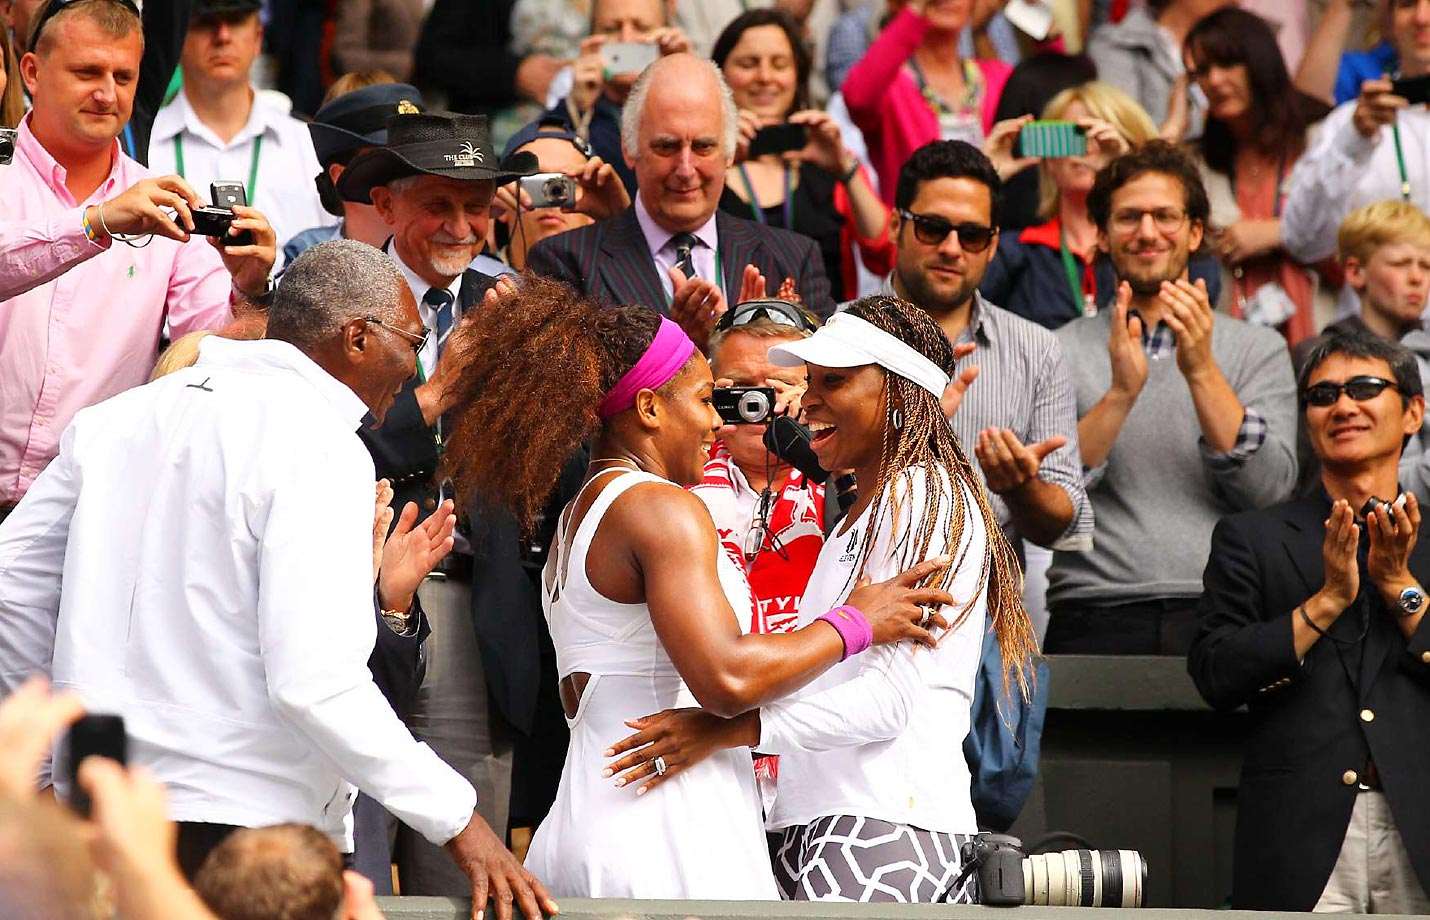 Despite the number of tough matches the two have played, Venus and Serena have always supported each other at matches, like here, when Venus watched her sister win her 14th Wimbledon title after Venus lost in the first round.